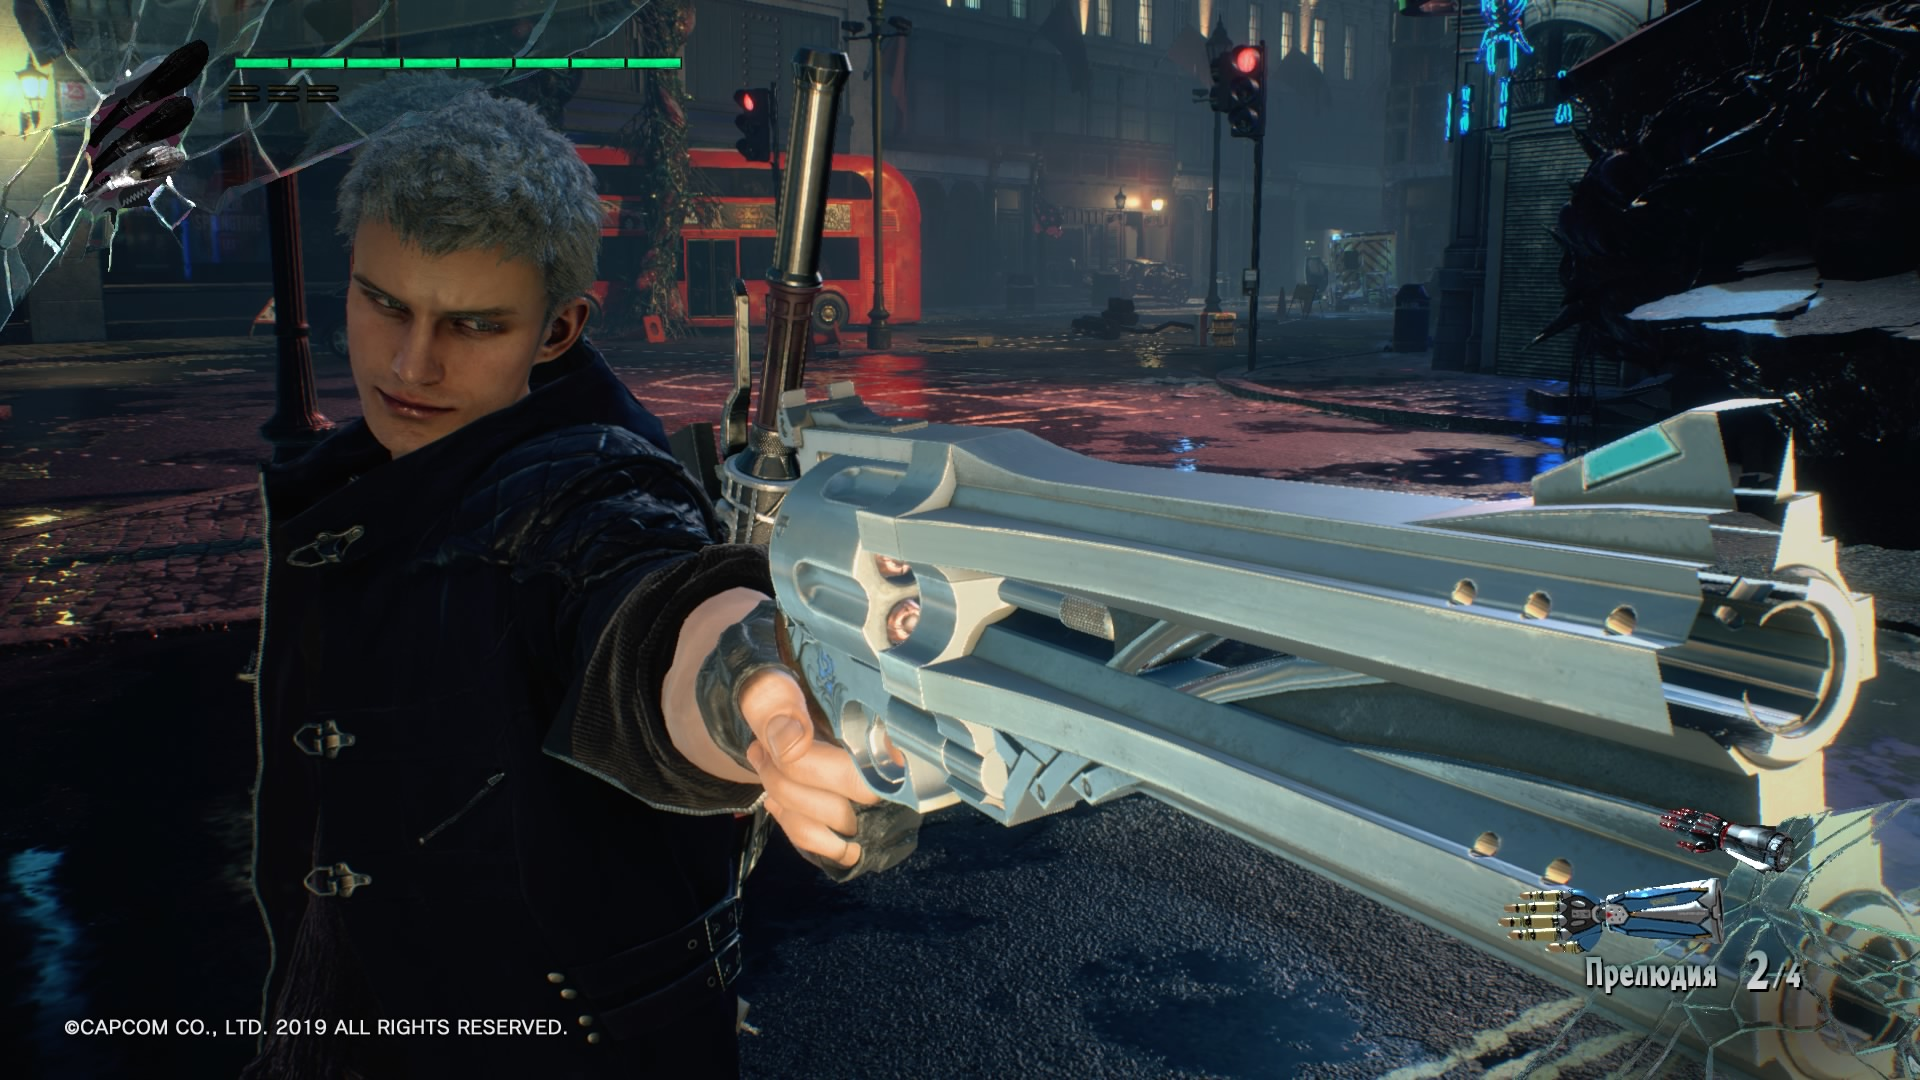 Devil May Cry 5 Demo_20190209080424.jpg - Devil May Cry 5